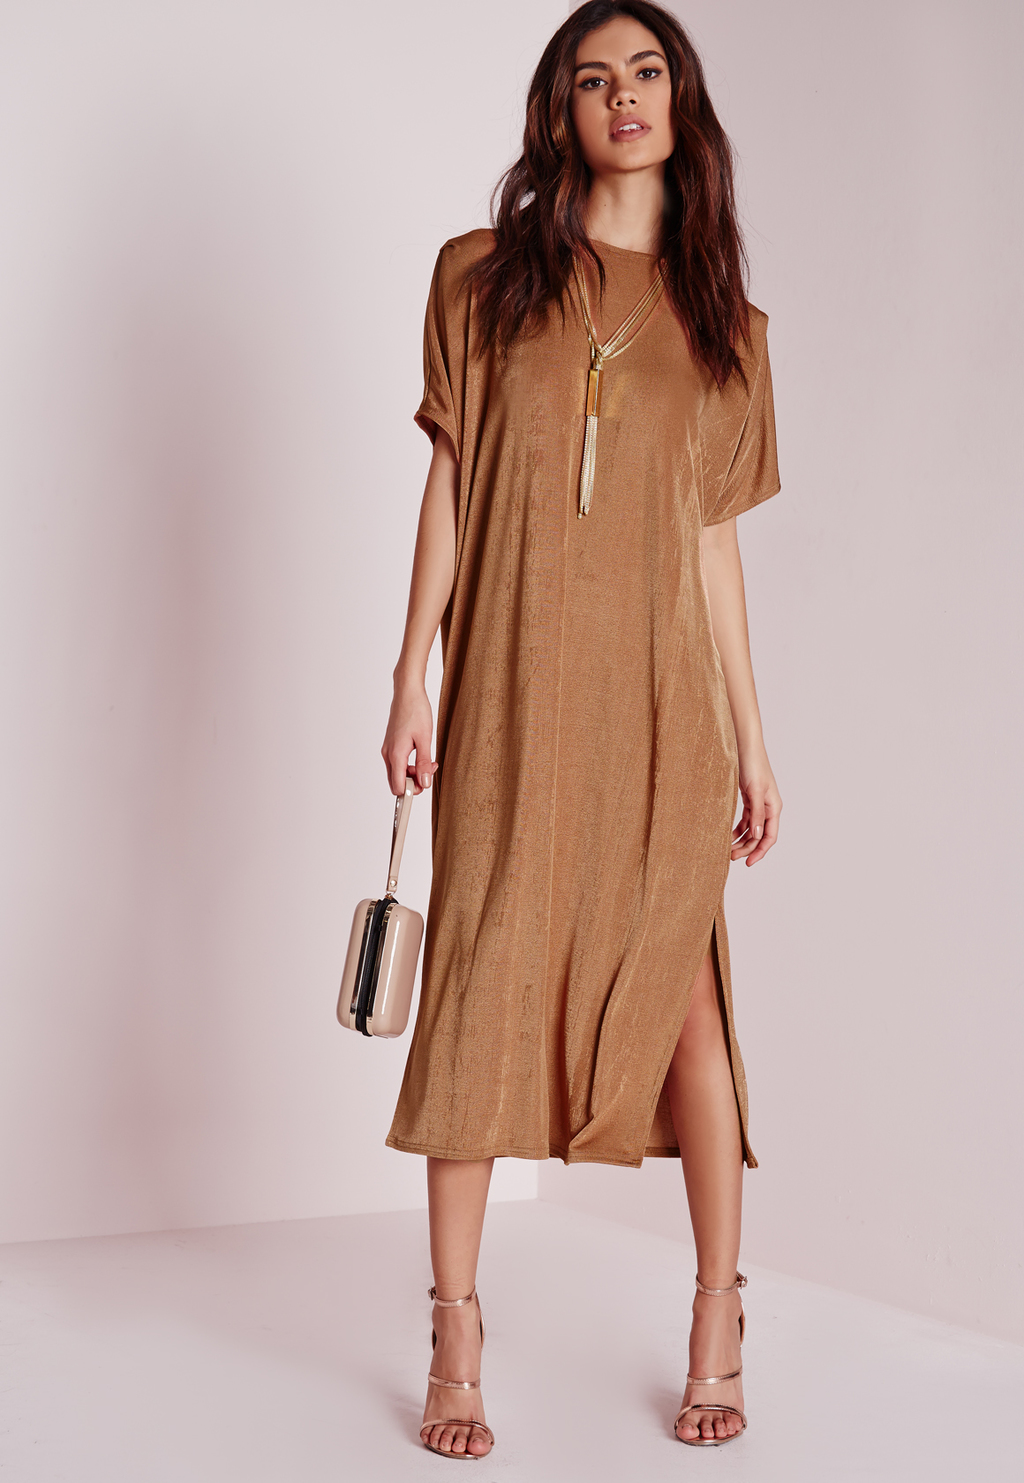 Oversized Midi T Shirt Dress Bronze, Bronze - style: t-shirt; length: below the knee; pattern: plain; predominant colour: bronze; occasions: evening; fit: body skimming; fibres: polyester/polyamide - stretch; neckline: crew; hip detail: slits at hip; sleeve length: short sleeve; sleeve style: standard; pattern type: fabric; texture group: jersey - stretchy/drapey; season: s/s 2016